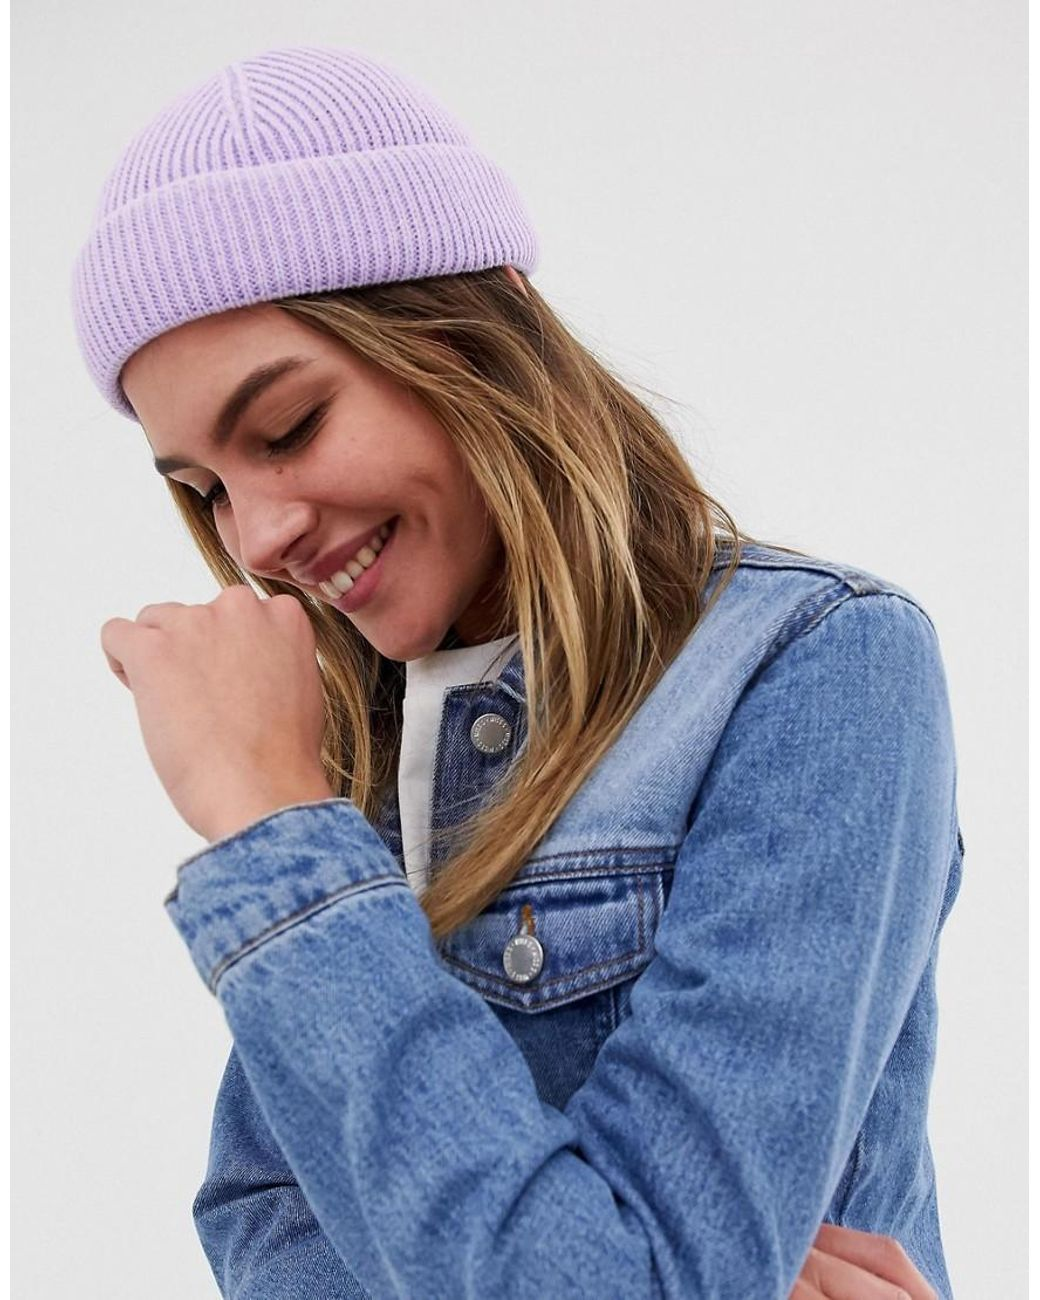 cec9310bd0a Long-Touch to Zoom. Long-Touch to Zoom. 1  2. ASOS - Purple Mini Fisherman  Beanie - Lyst ...